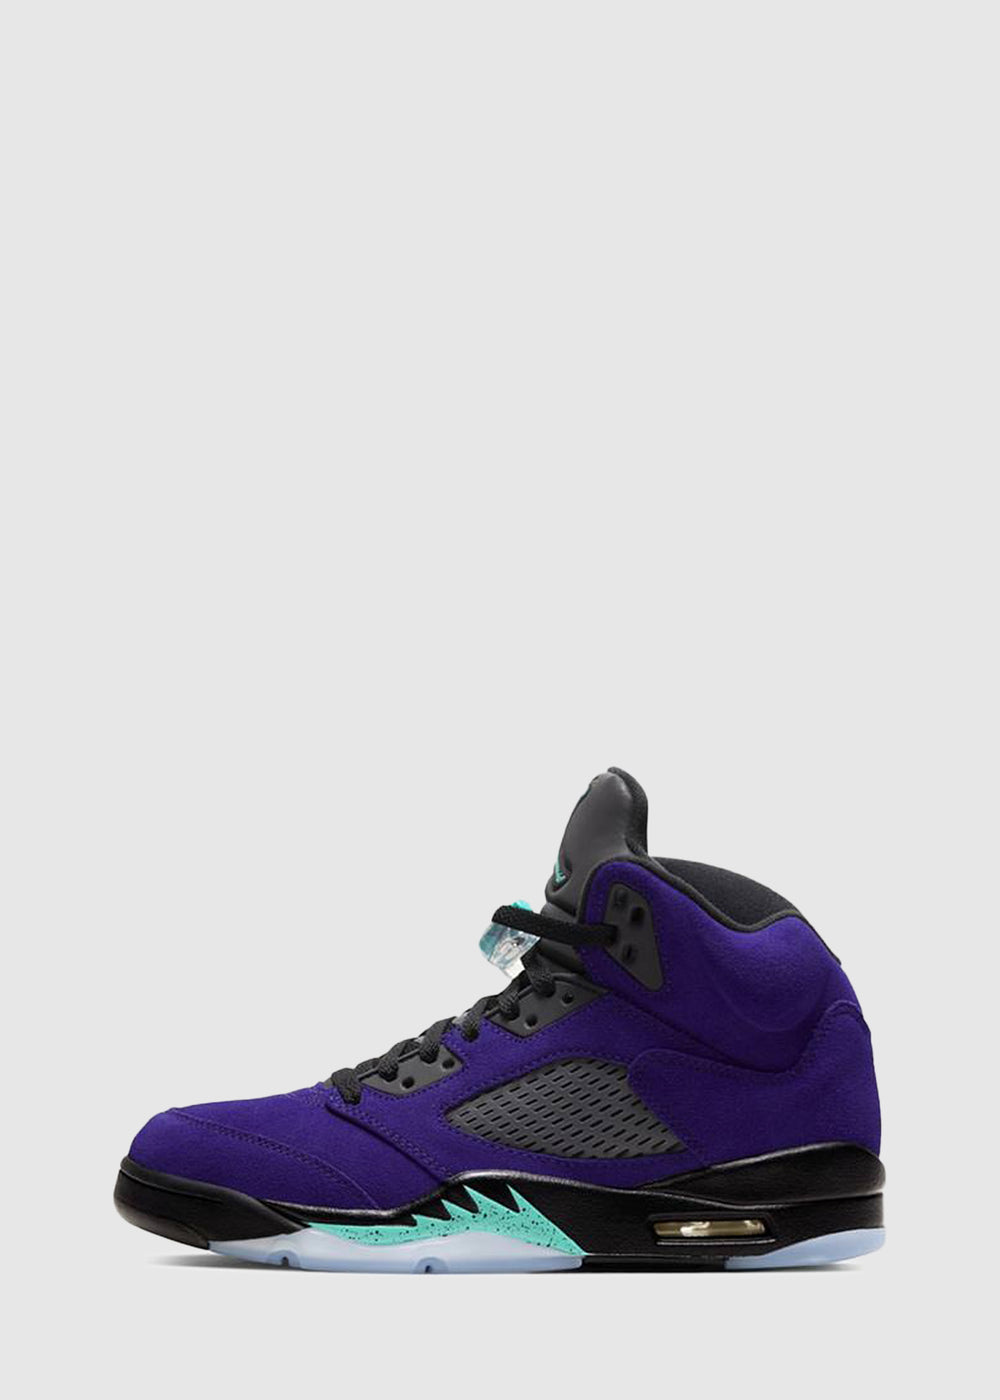 aj5-alternate-grape-1